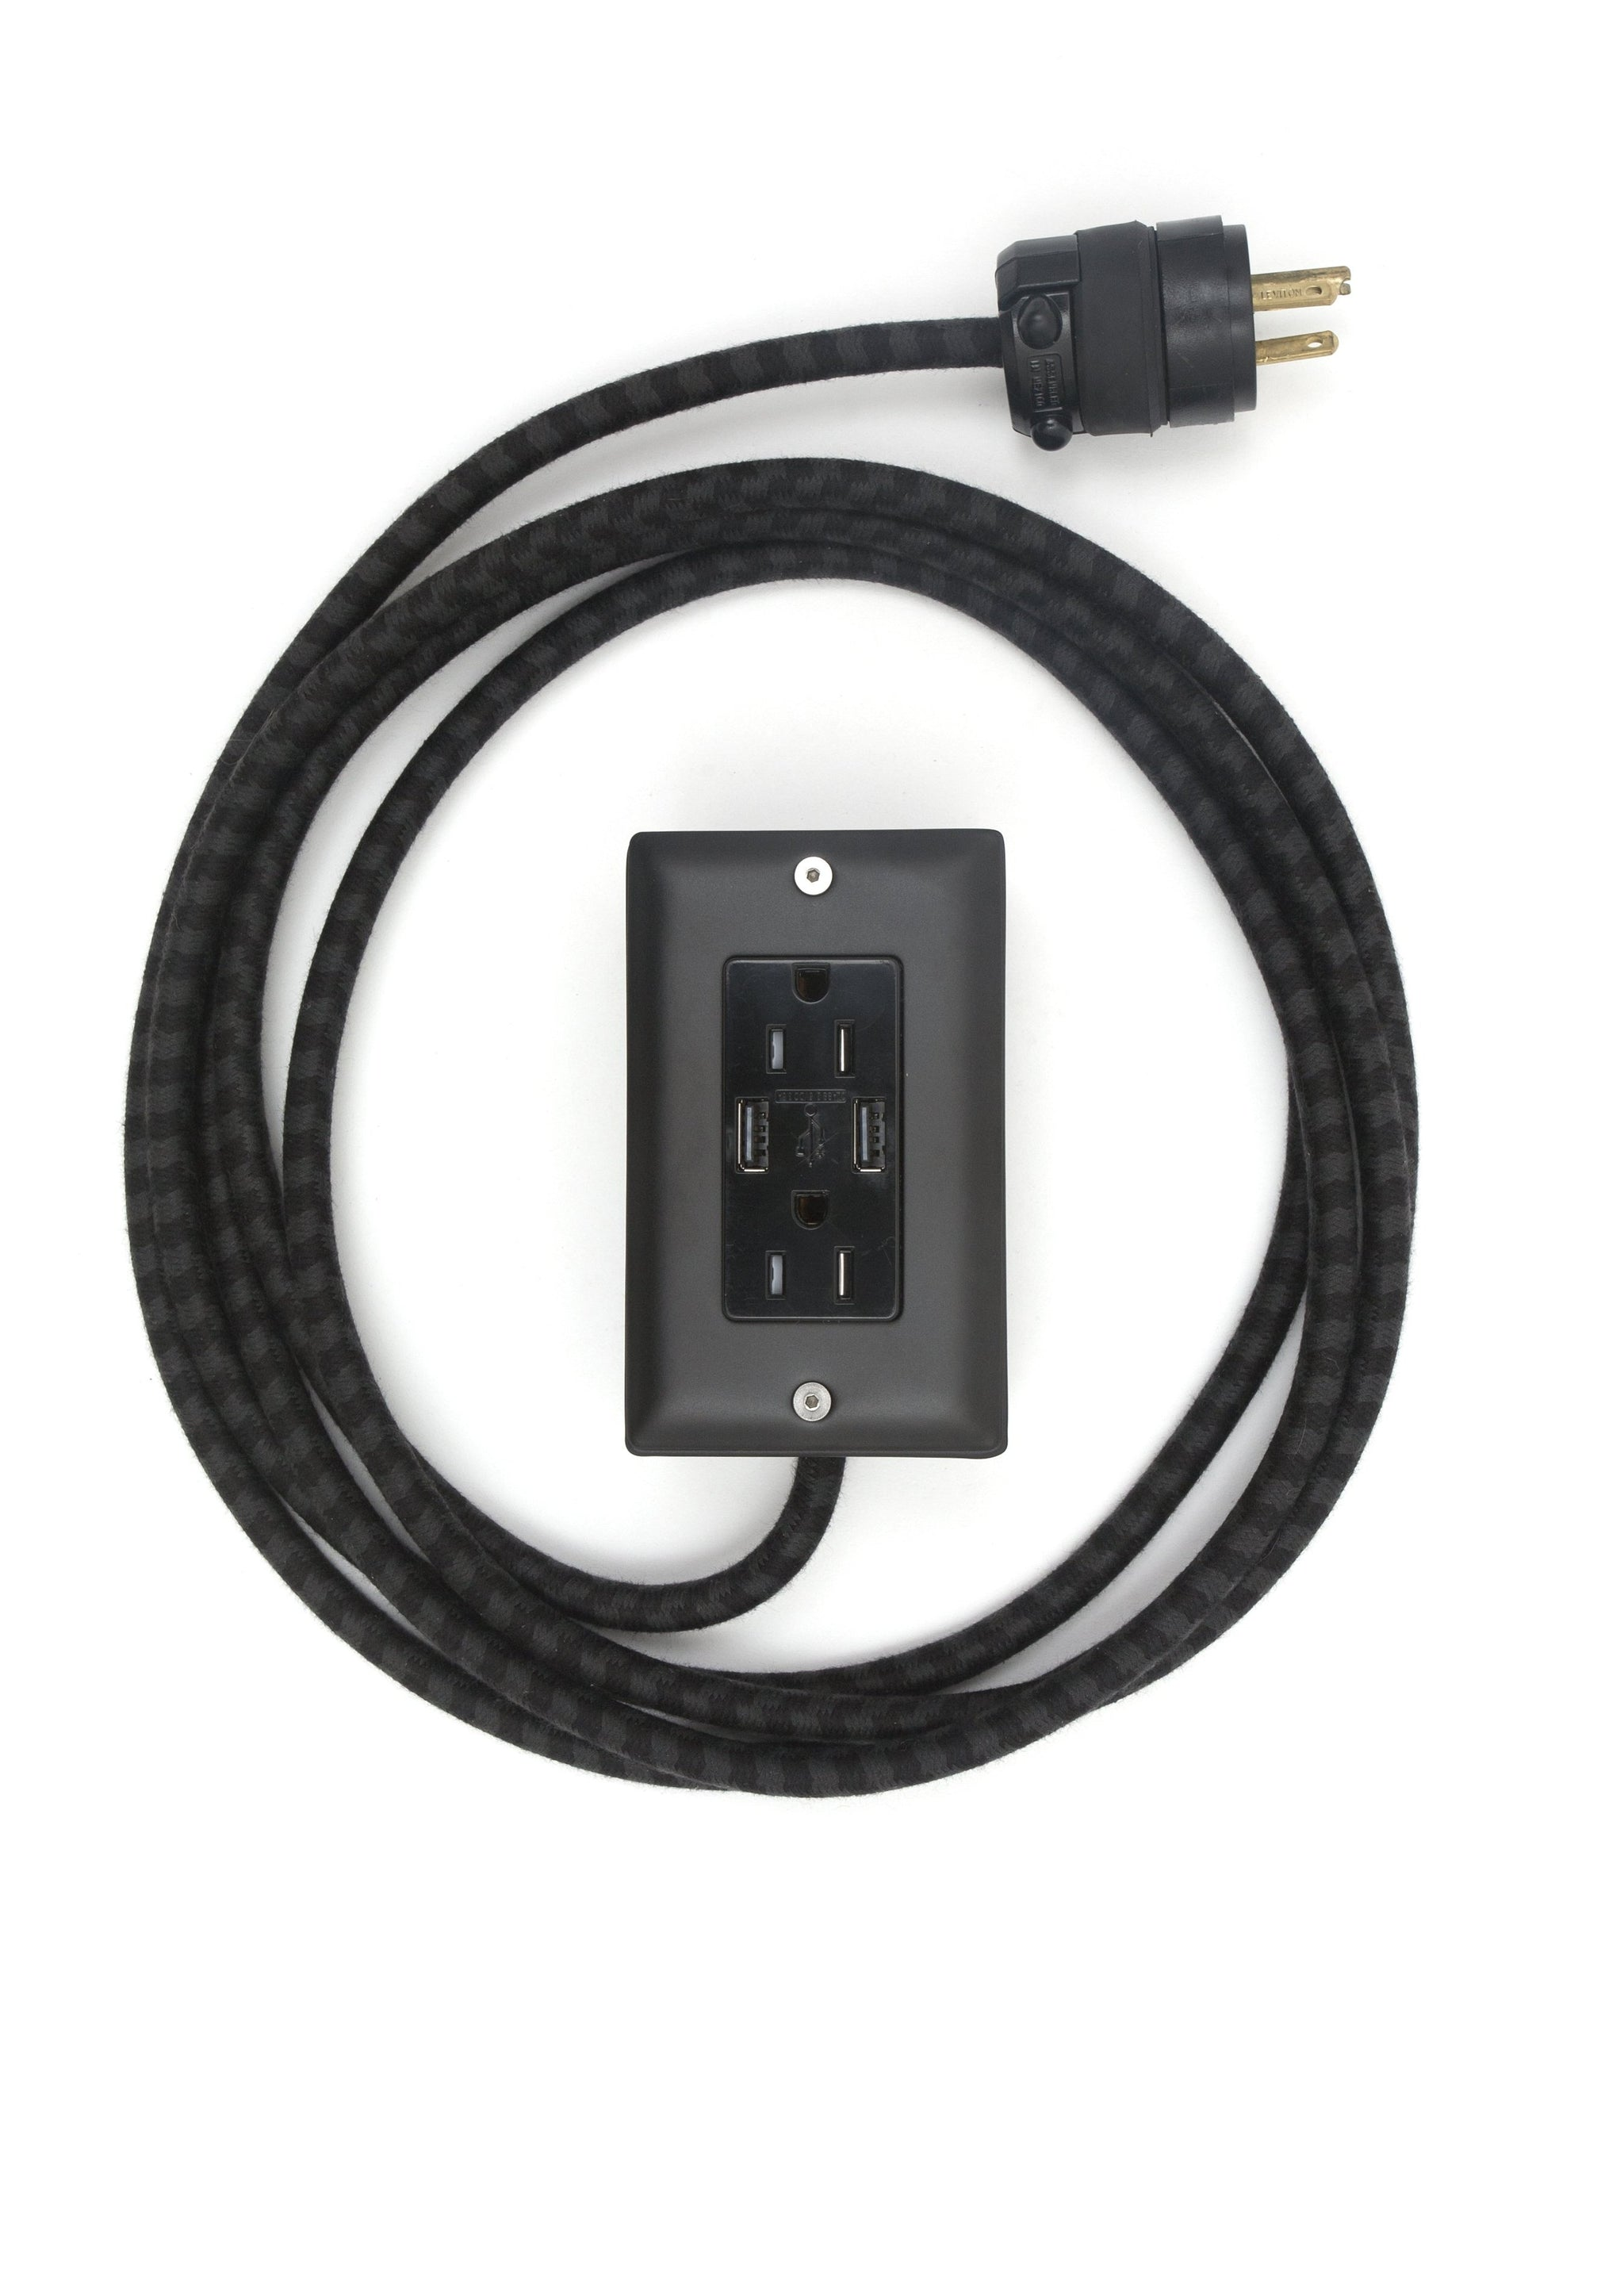 The First Smart Chip Extension Cord - 12' Extō Dual-USB, Dual-Outlet - Carrara (Matte) Black